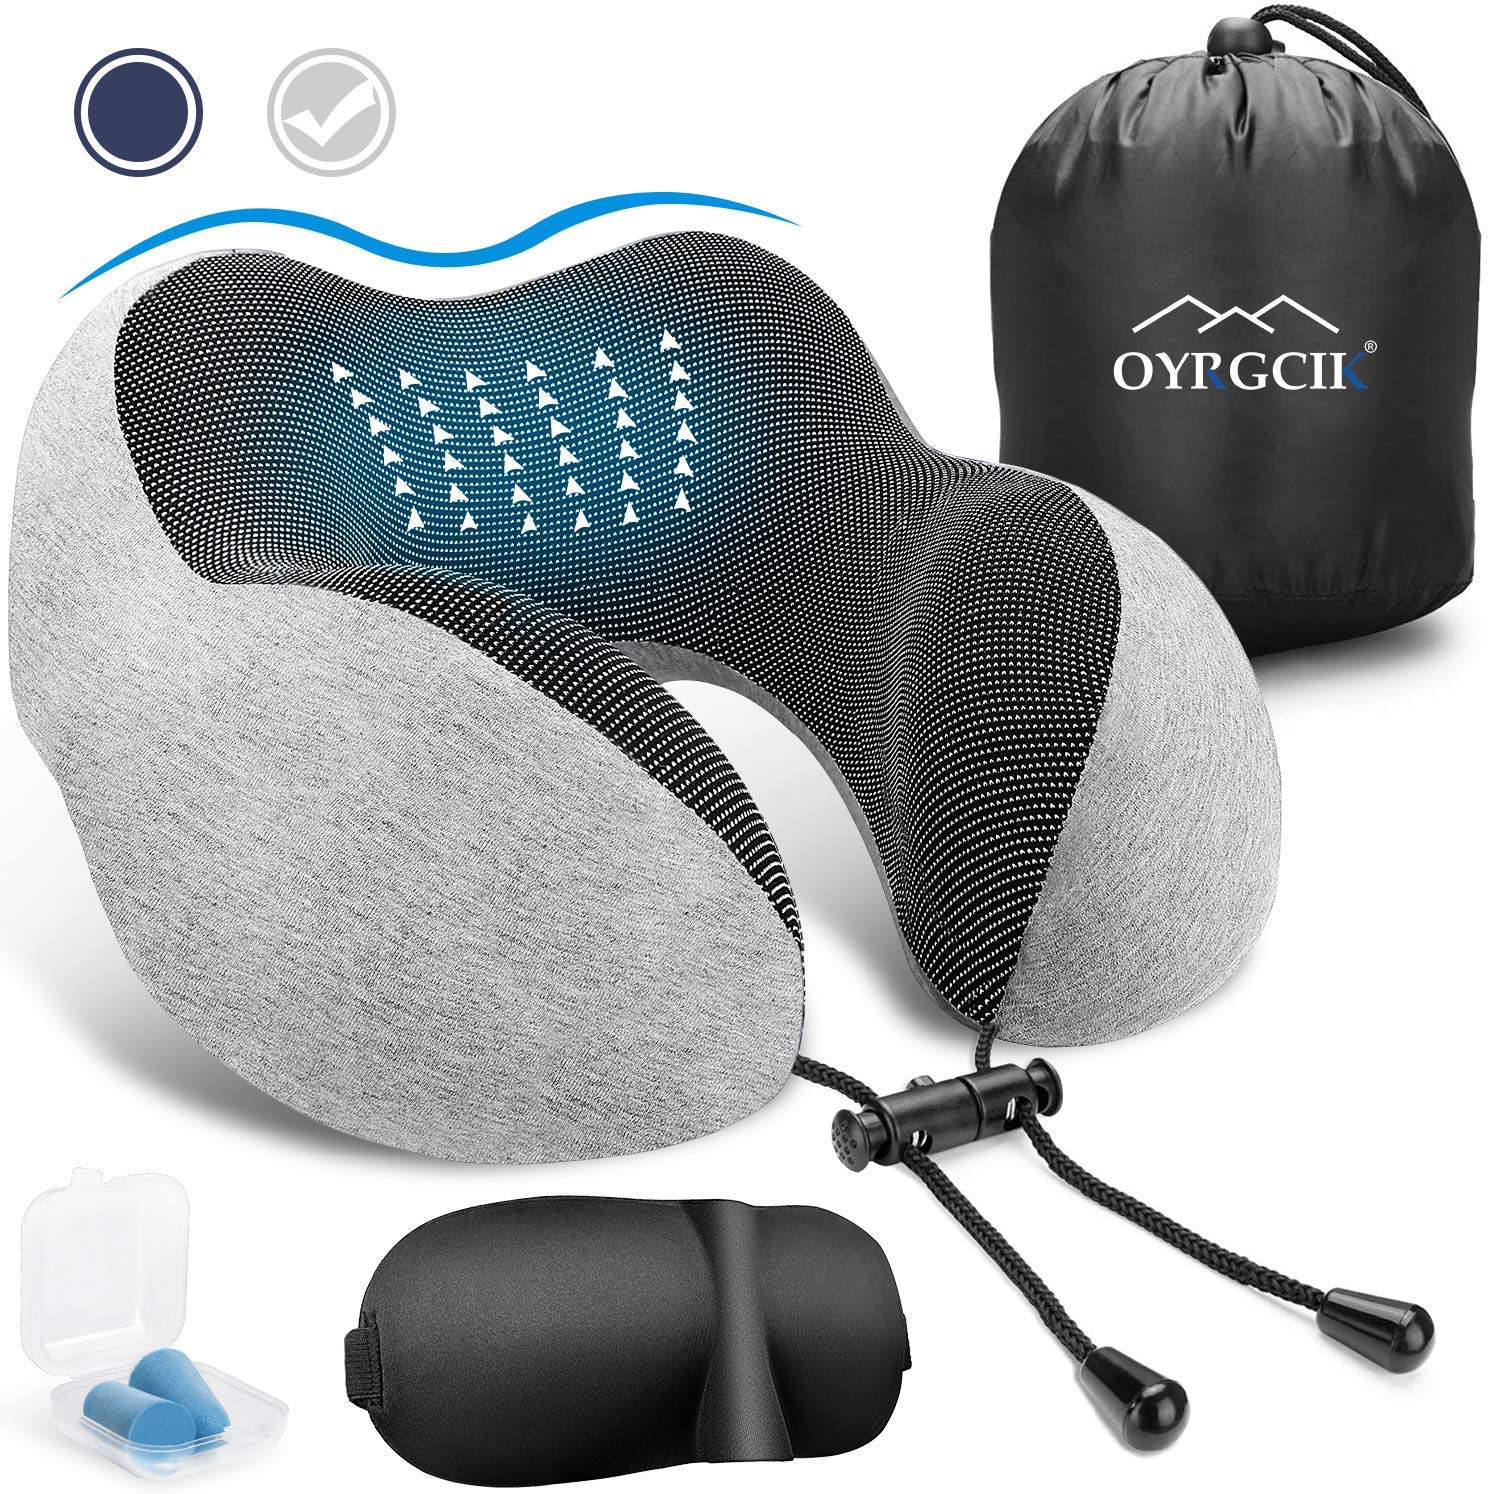 Travel Pillow for Long Haul Flights - Best Gifts For Men 2020